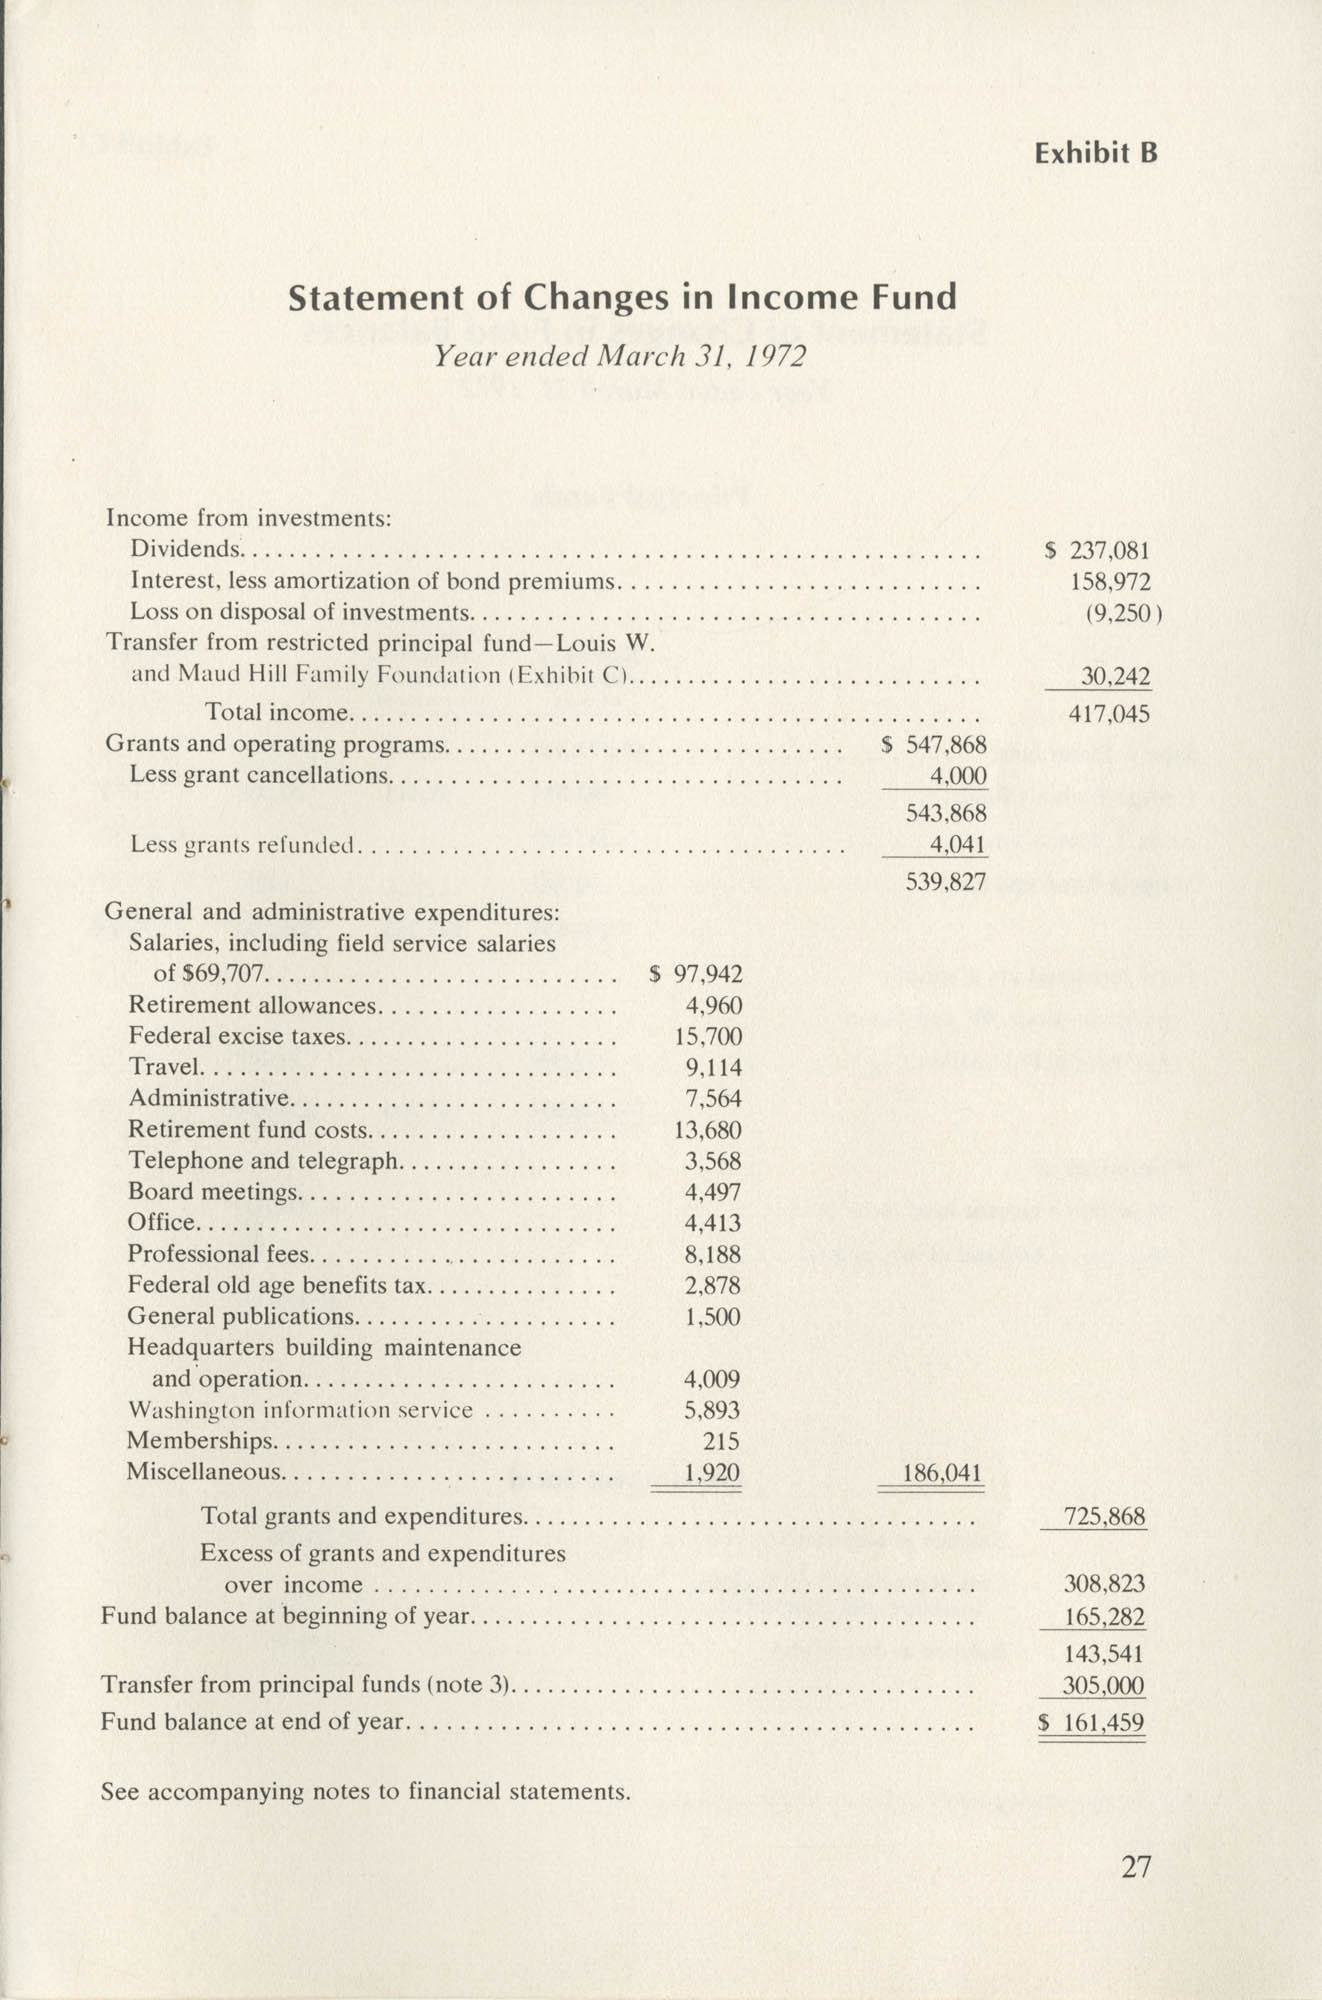 Southern Education Foundation, Annual Report 1971-1972, Page 27